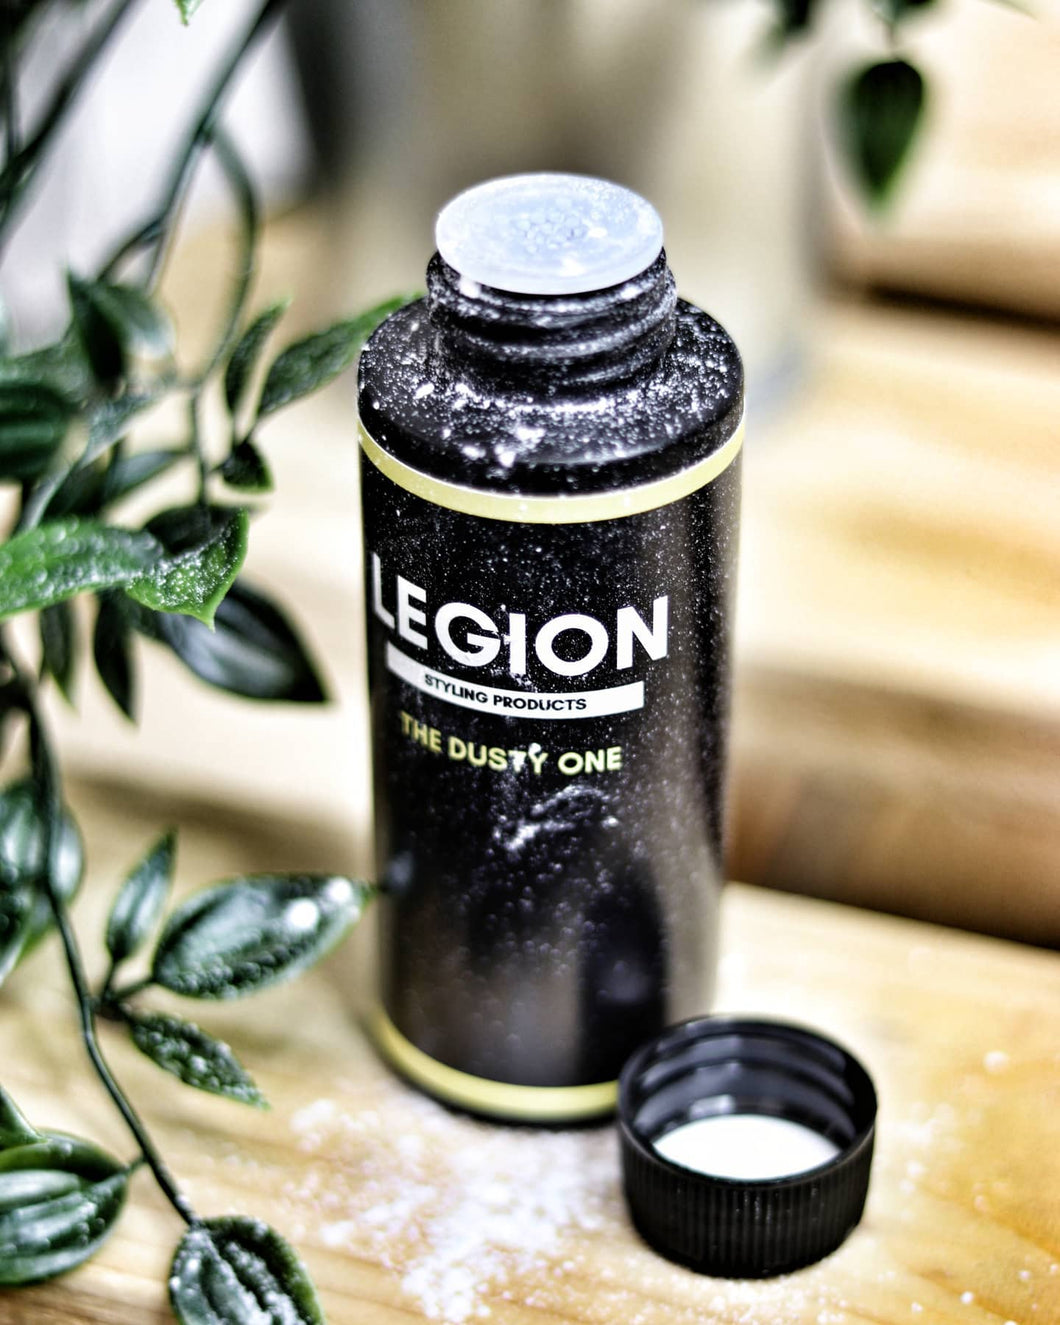 Legion Styling Products-The Dusty One